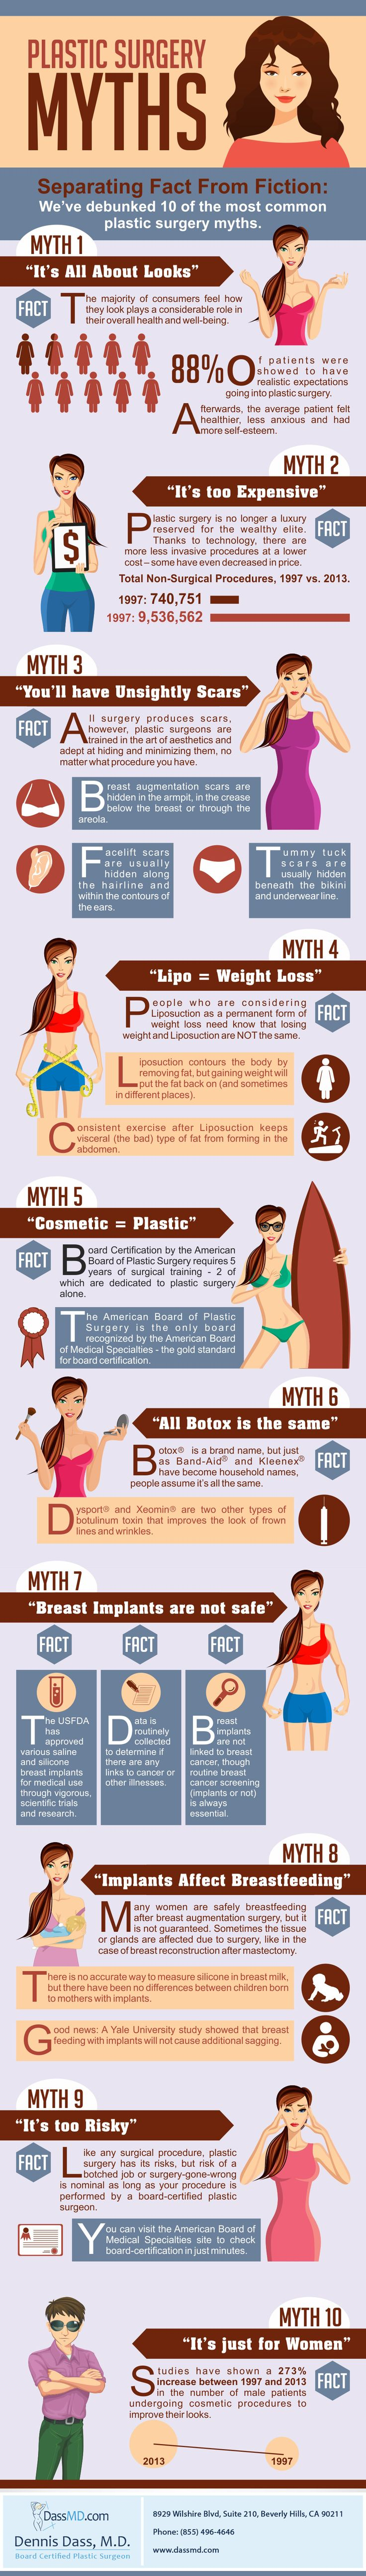 Myth Busting: What You Should Know About Plastic Surgery - Do you fancy an infographic?  There are a lot of them online, but if you want your own please visit http://www.linfografico.com/prezzi/  Online girano molte infografiche, se ne vuoi realizzare una tutta tua visita http://www.linfografico.com/prezzi/